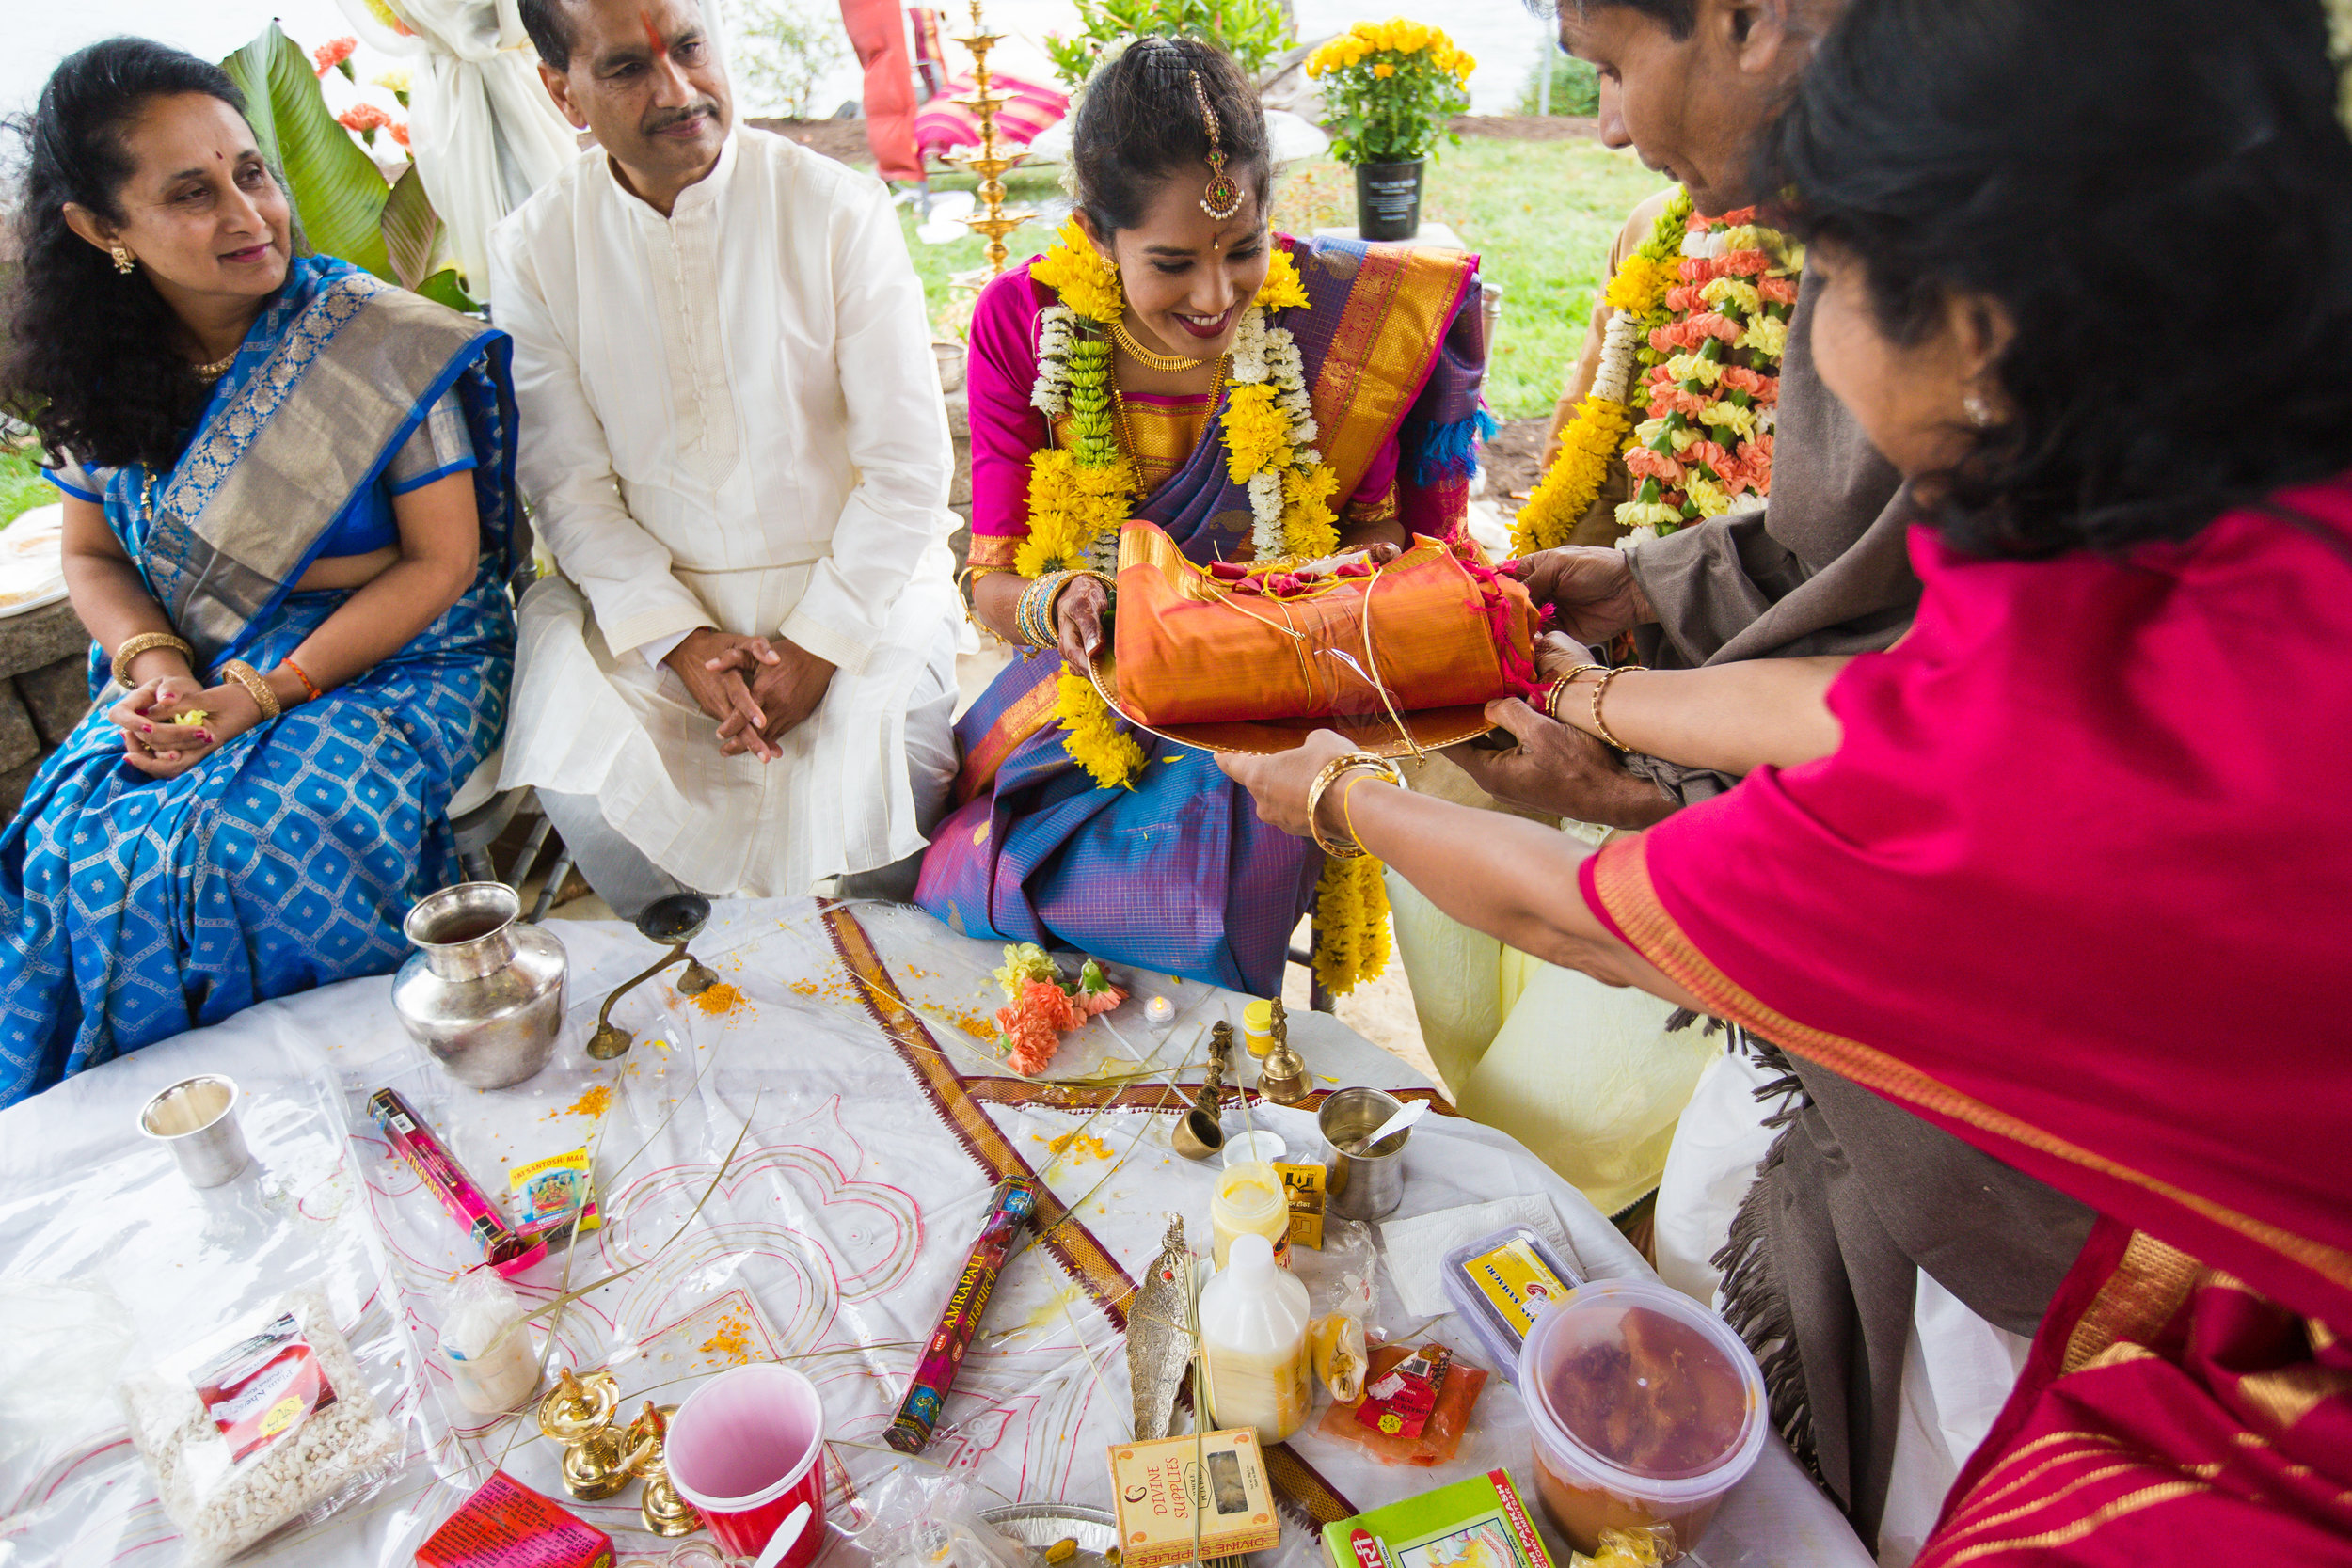 AnjaliArvind-Friday-CeremonySouth-Proof-3600px-017-_AP_5023.jpg